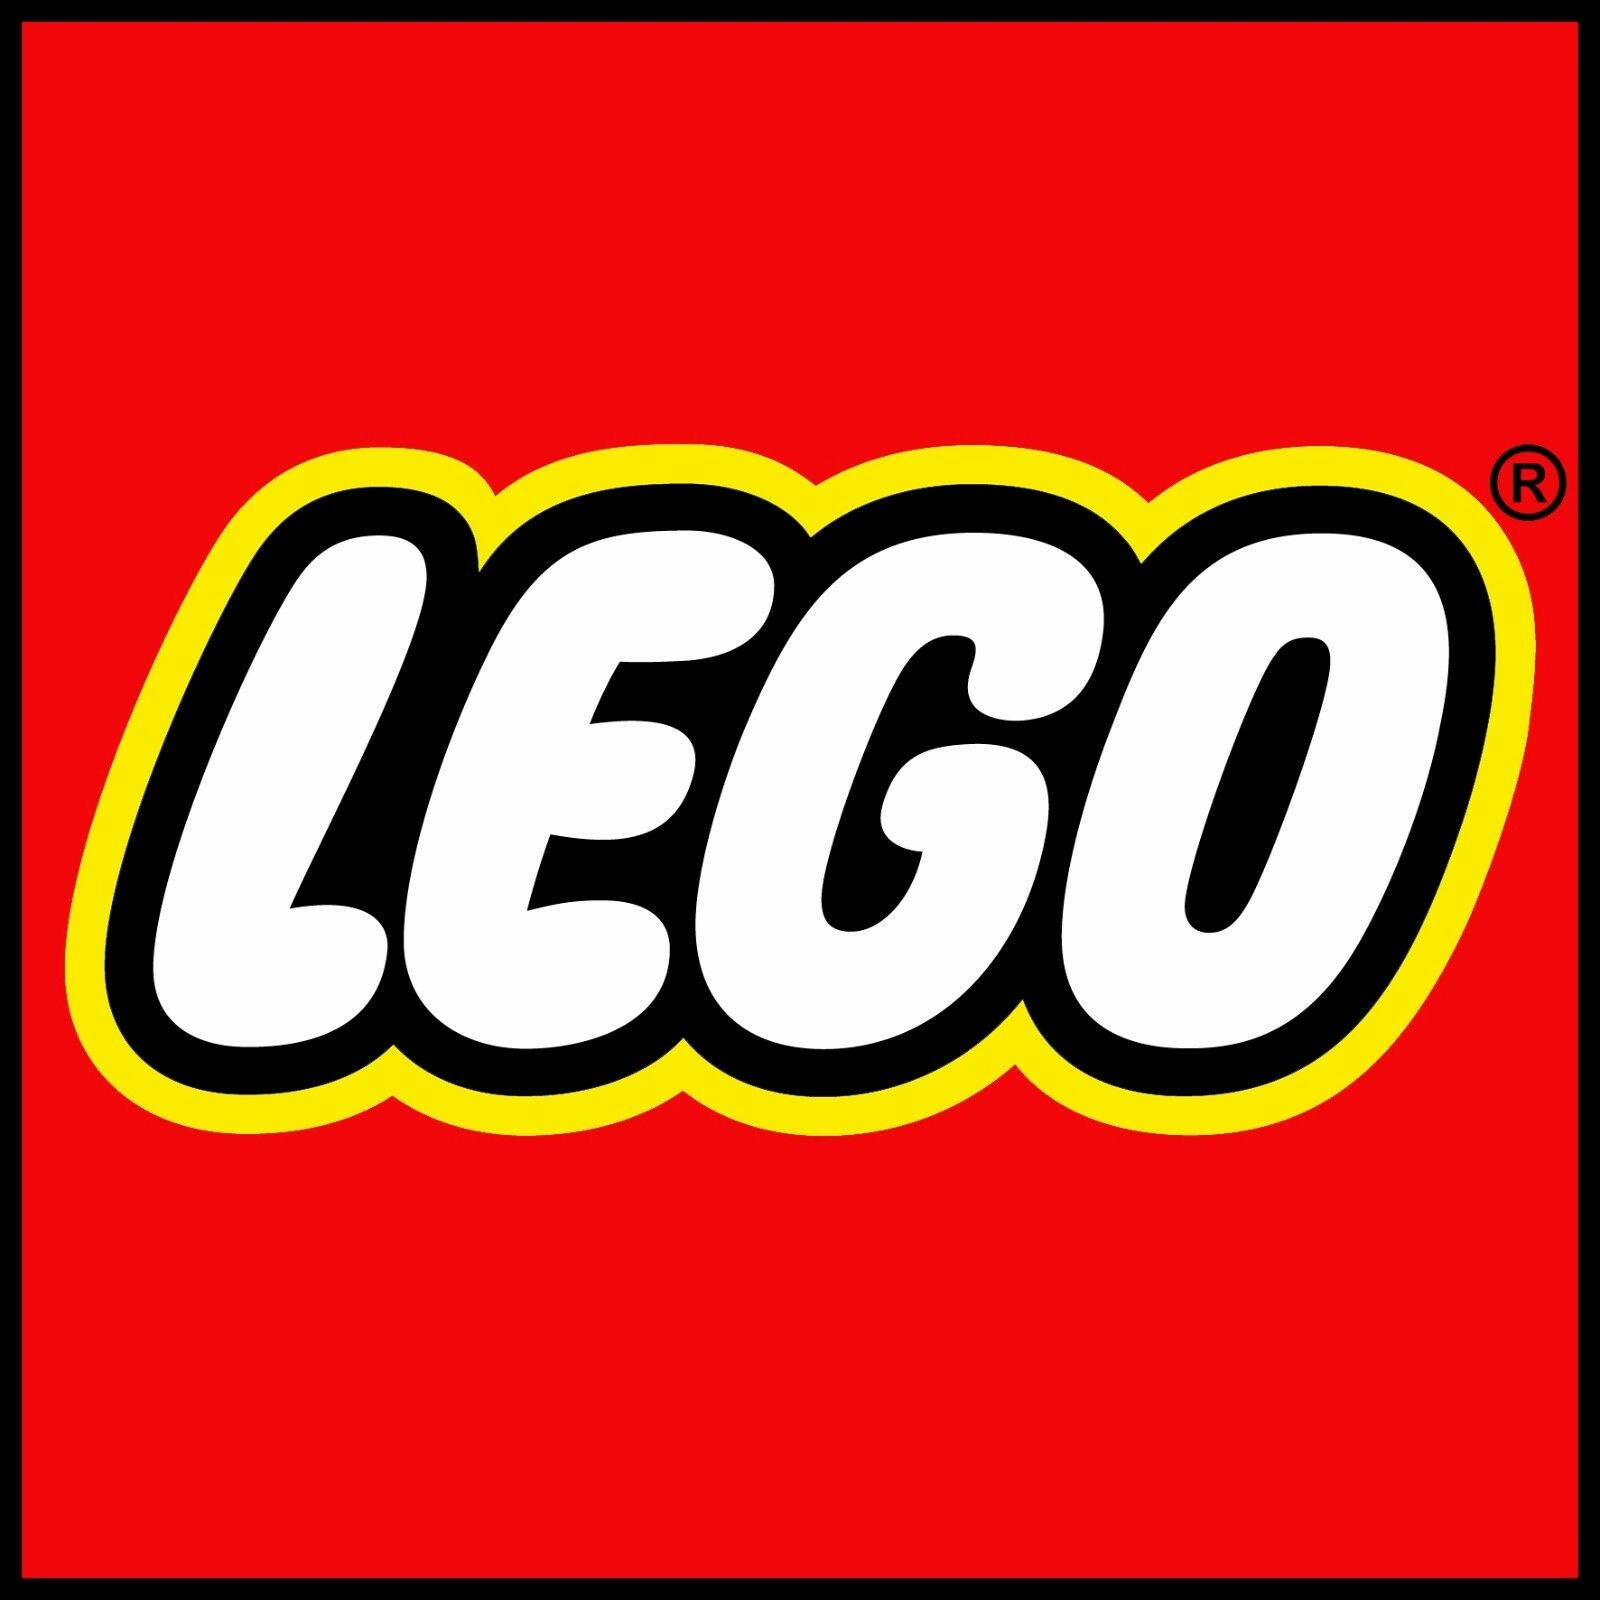 Lego Lot 2054   COMING SOON   TBU